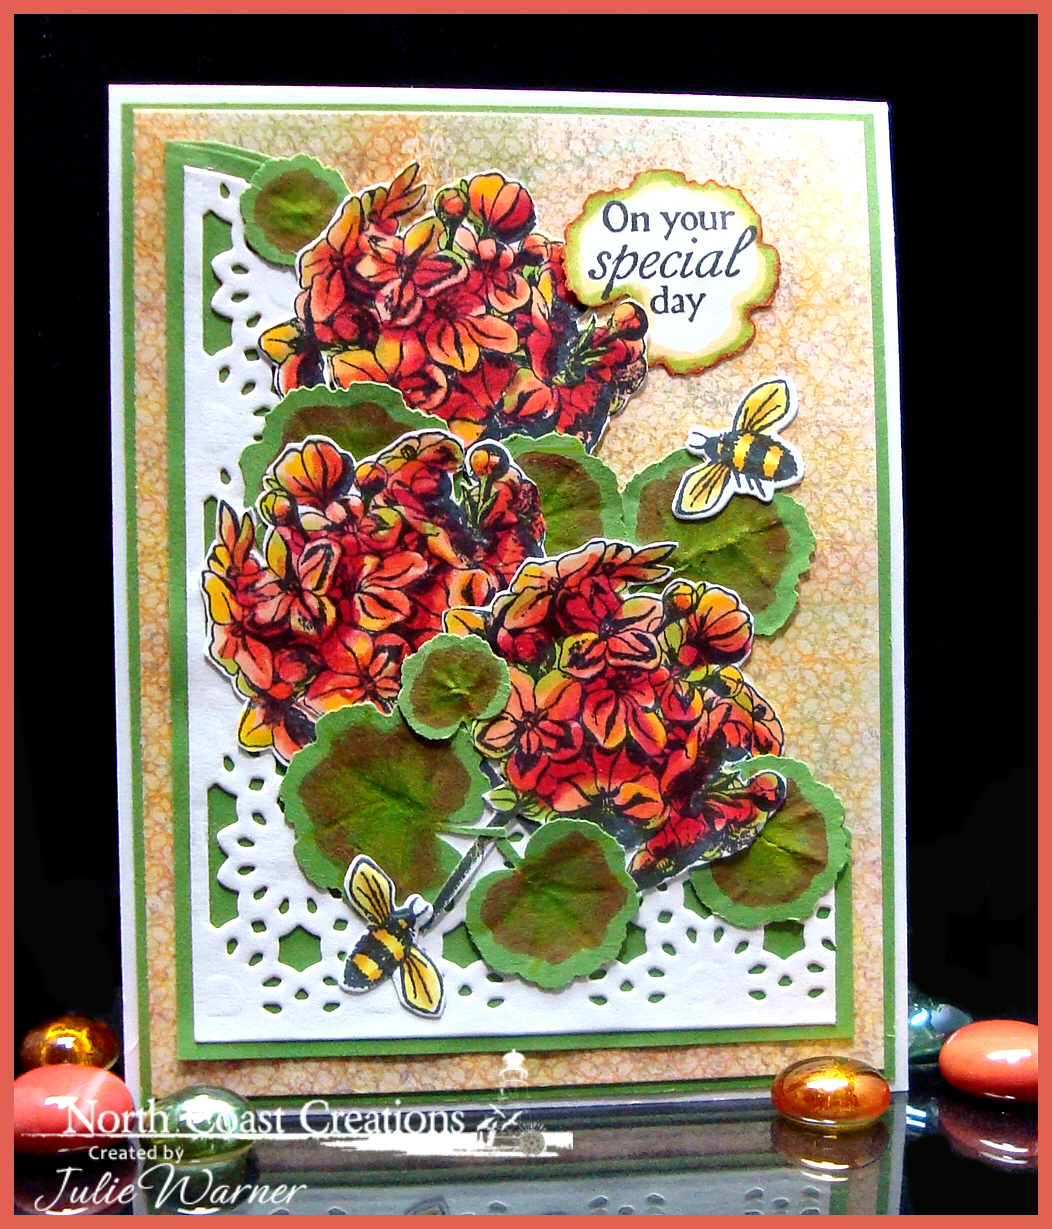 Stamps - North Coast Creations Floral Sentiments 6, ODBD Blooming Garden Paper Collection,  ODBD Custom Daisy Chain Background Die, ODBD Custom Zinnia & Leaves Die